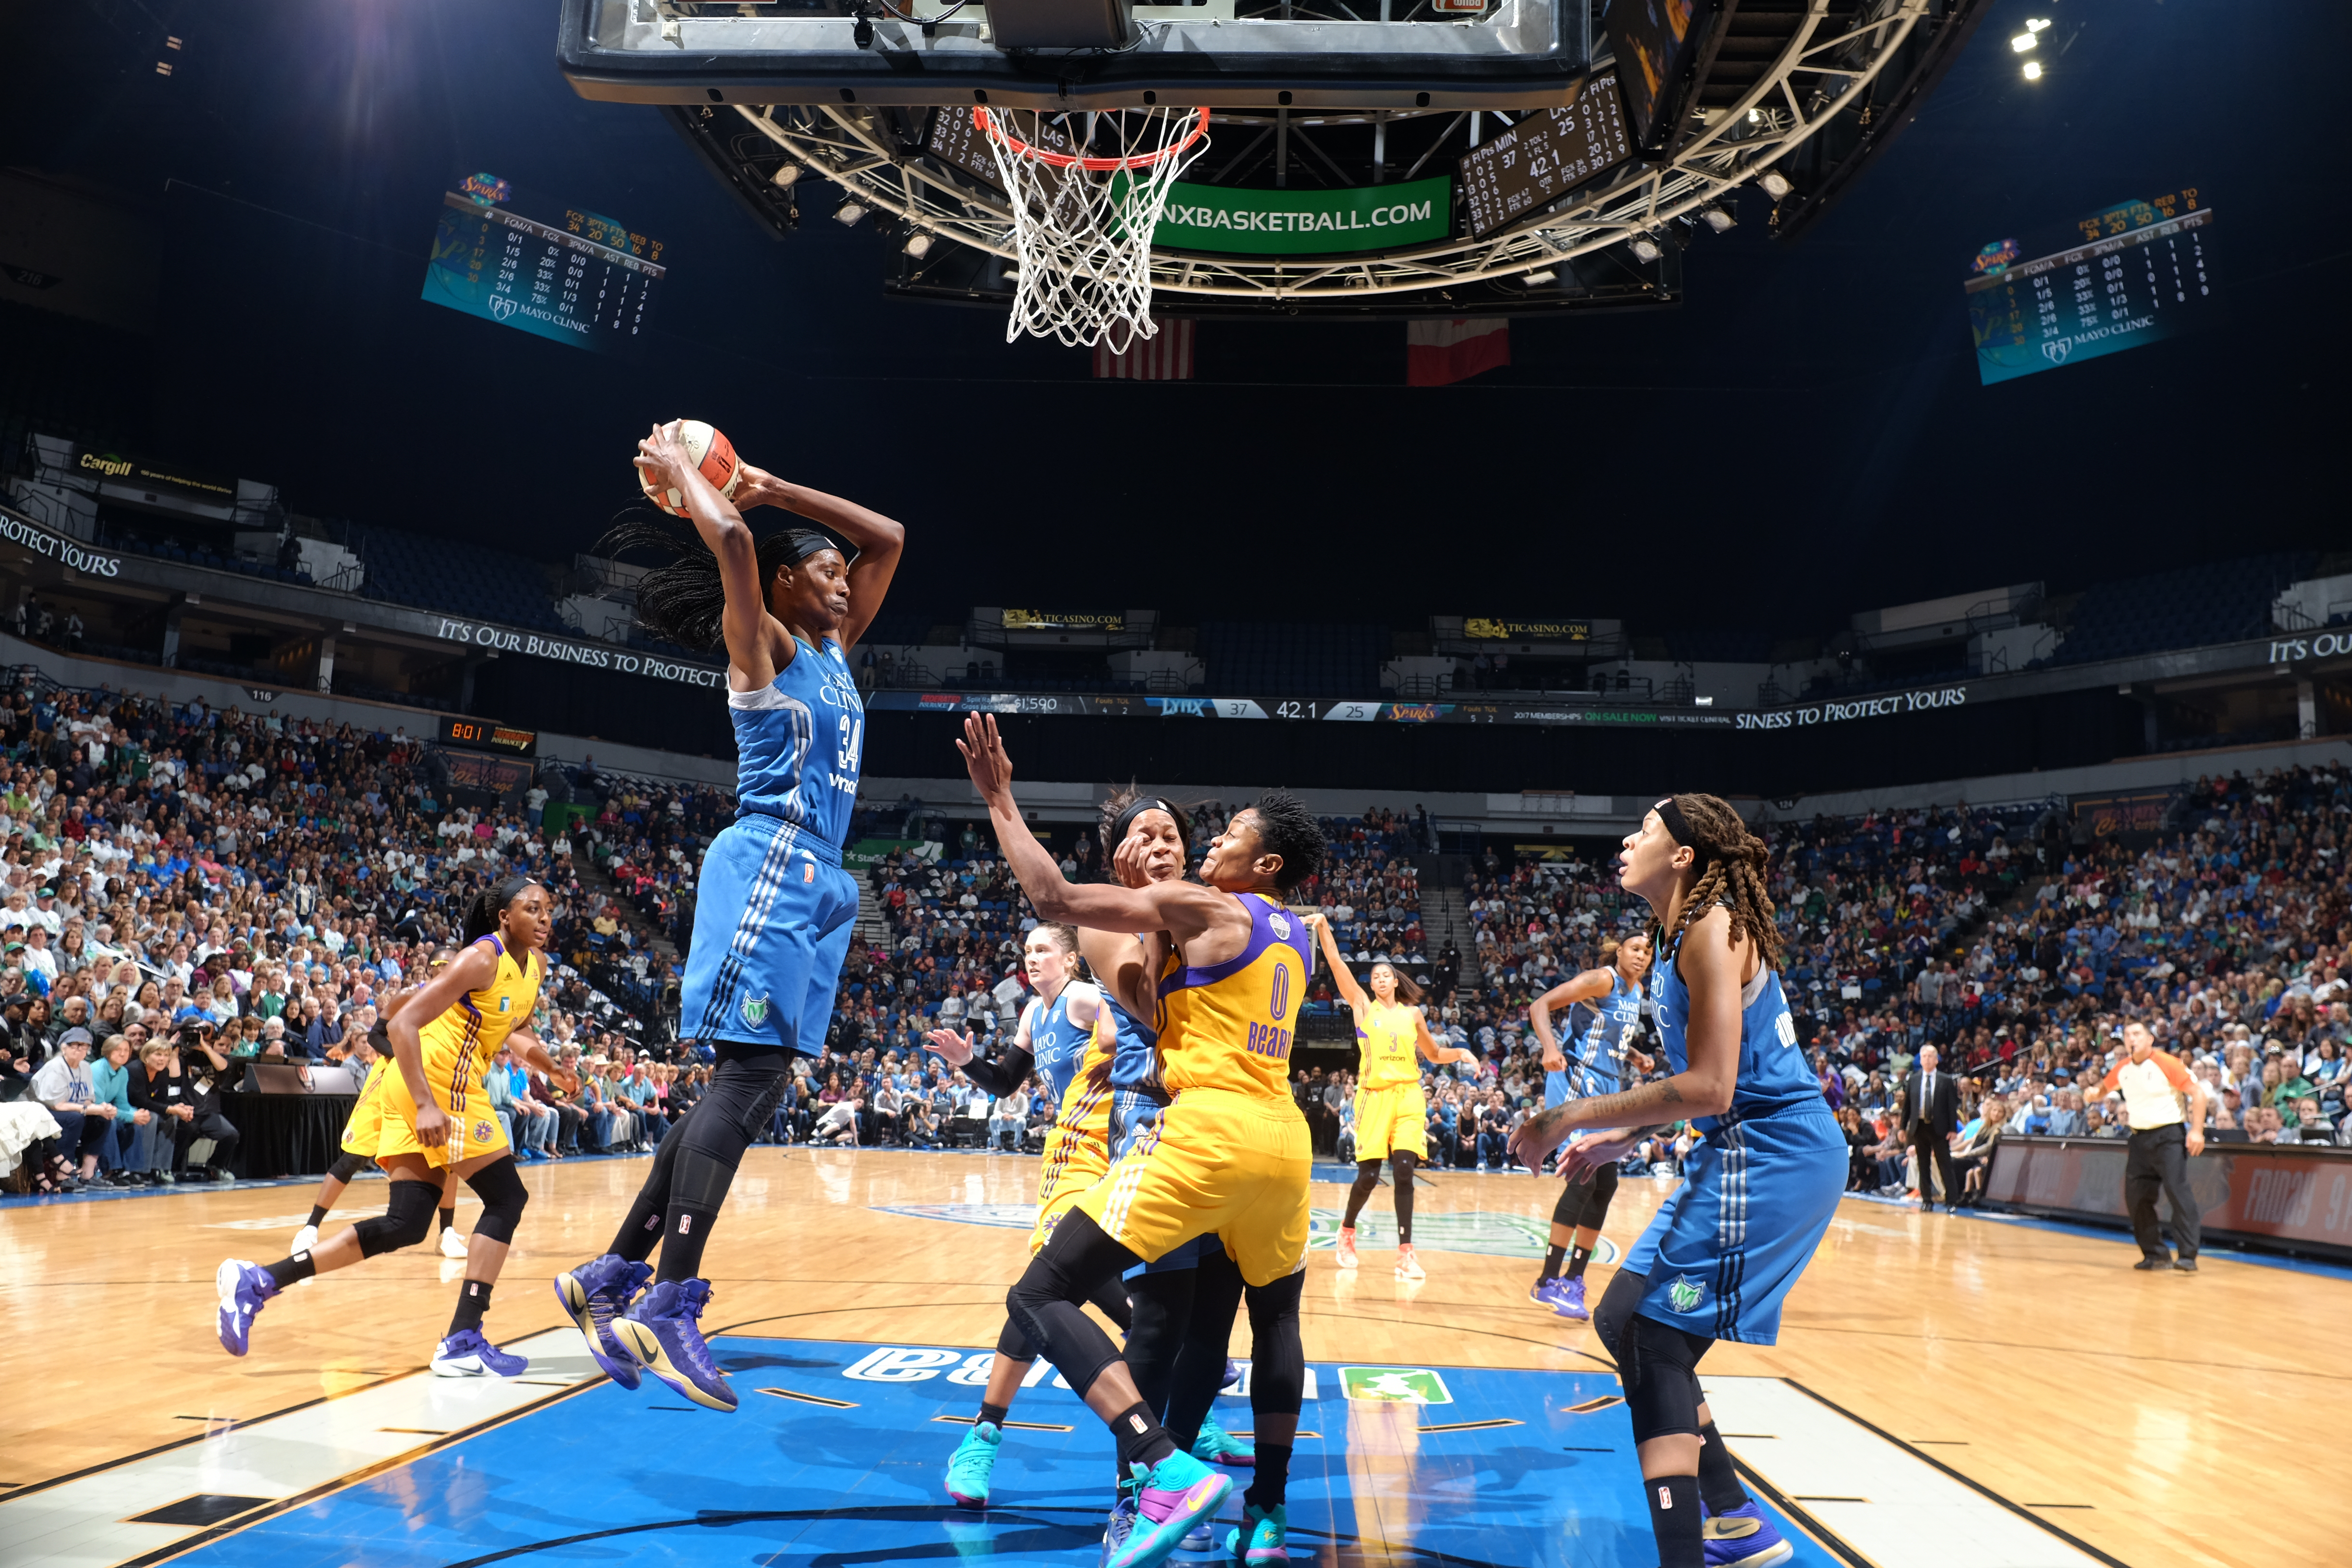 MINNEAPOLIS, MN - OCTOBER 11:  Sylvia Fowles #34 of the Minnesota Lynx grabs the rebound against the Los Angeles Sparks during Game Two of the 2016 WNBA Finals on October 11, 2016 at Target Center in Minneapolis, Minnesota. NOTE TO USER: User expressly acknowledges and agrees that, by downloading and or using this Photograph, user is consenting to the terms and conditions of the Getty Images License Agreement. Mandatory Copyright Notice: Copyright 2016 NBAE (Photo by David Sherman/NBAE via Getty Images)